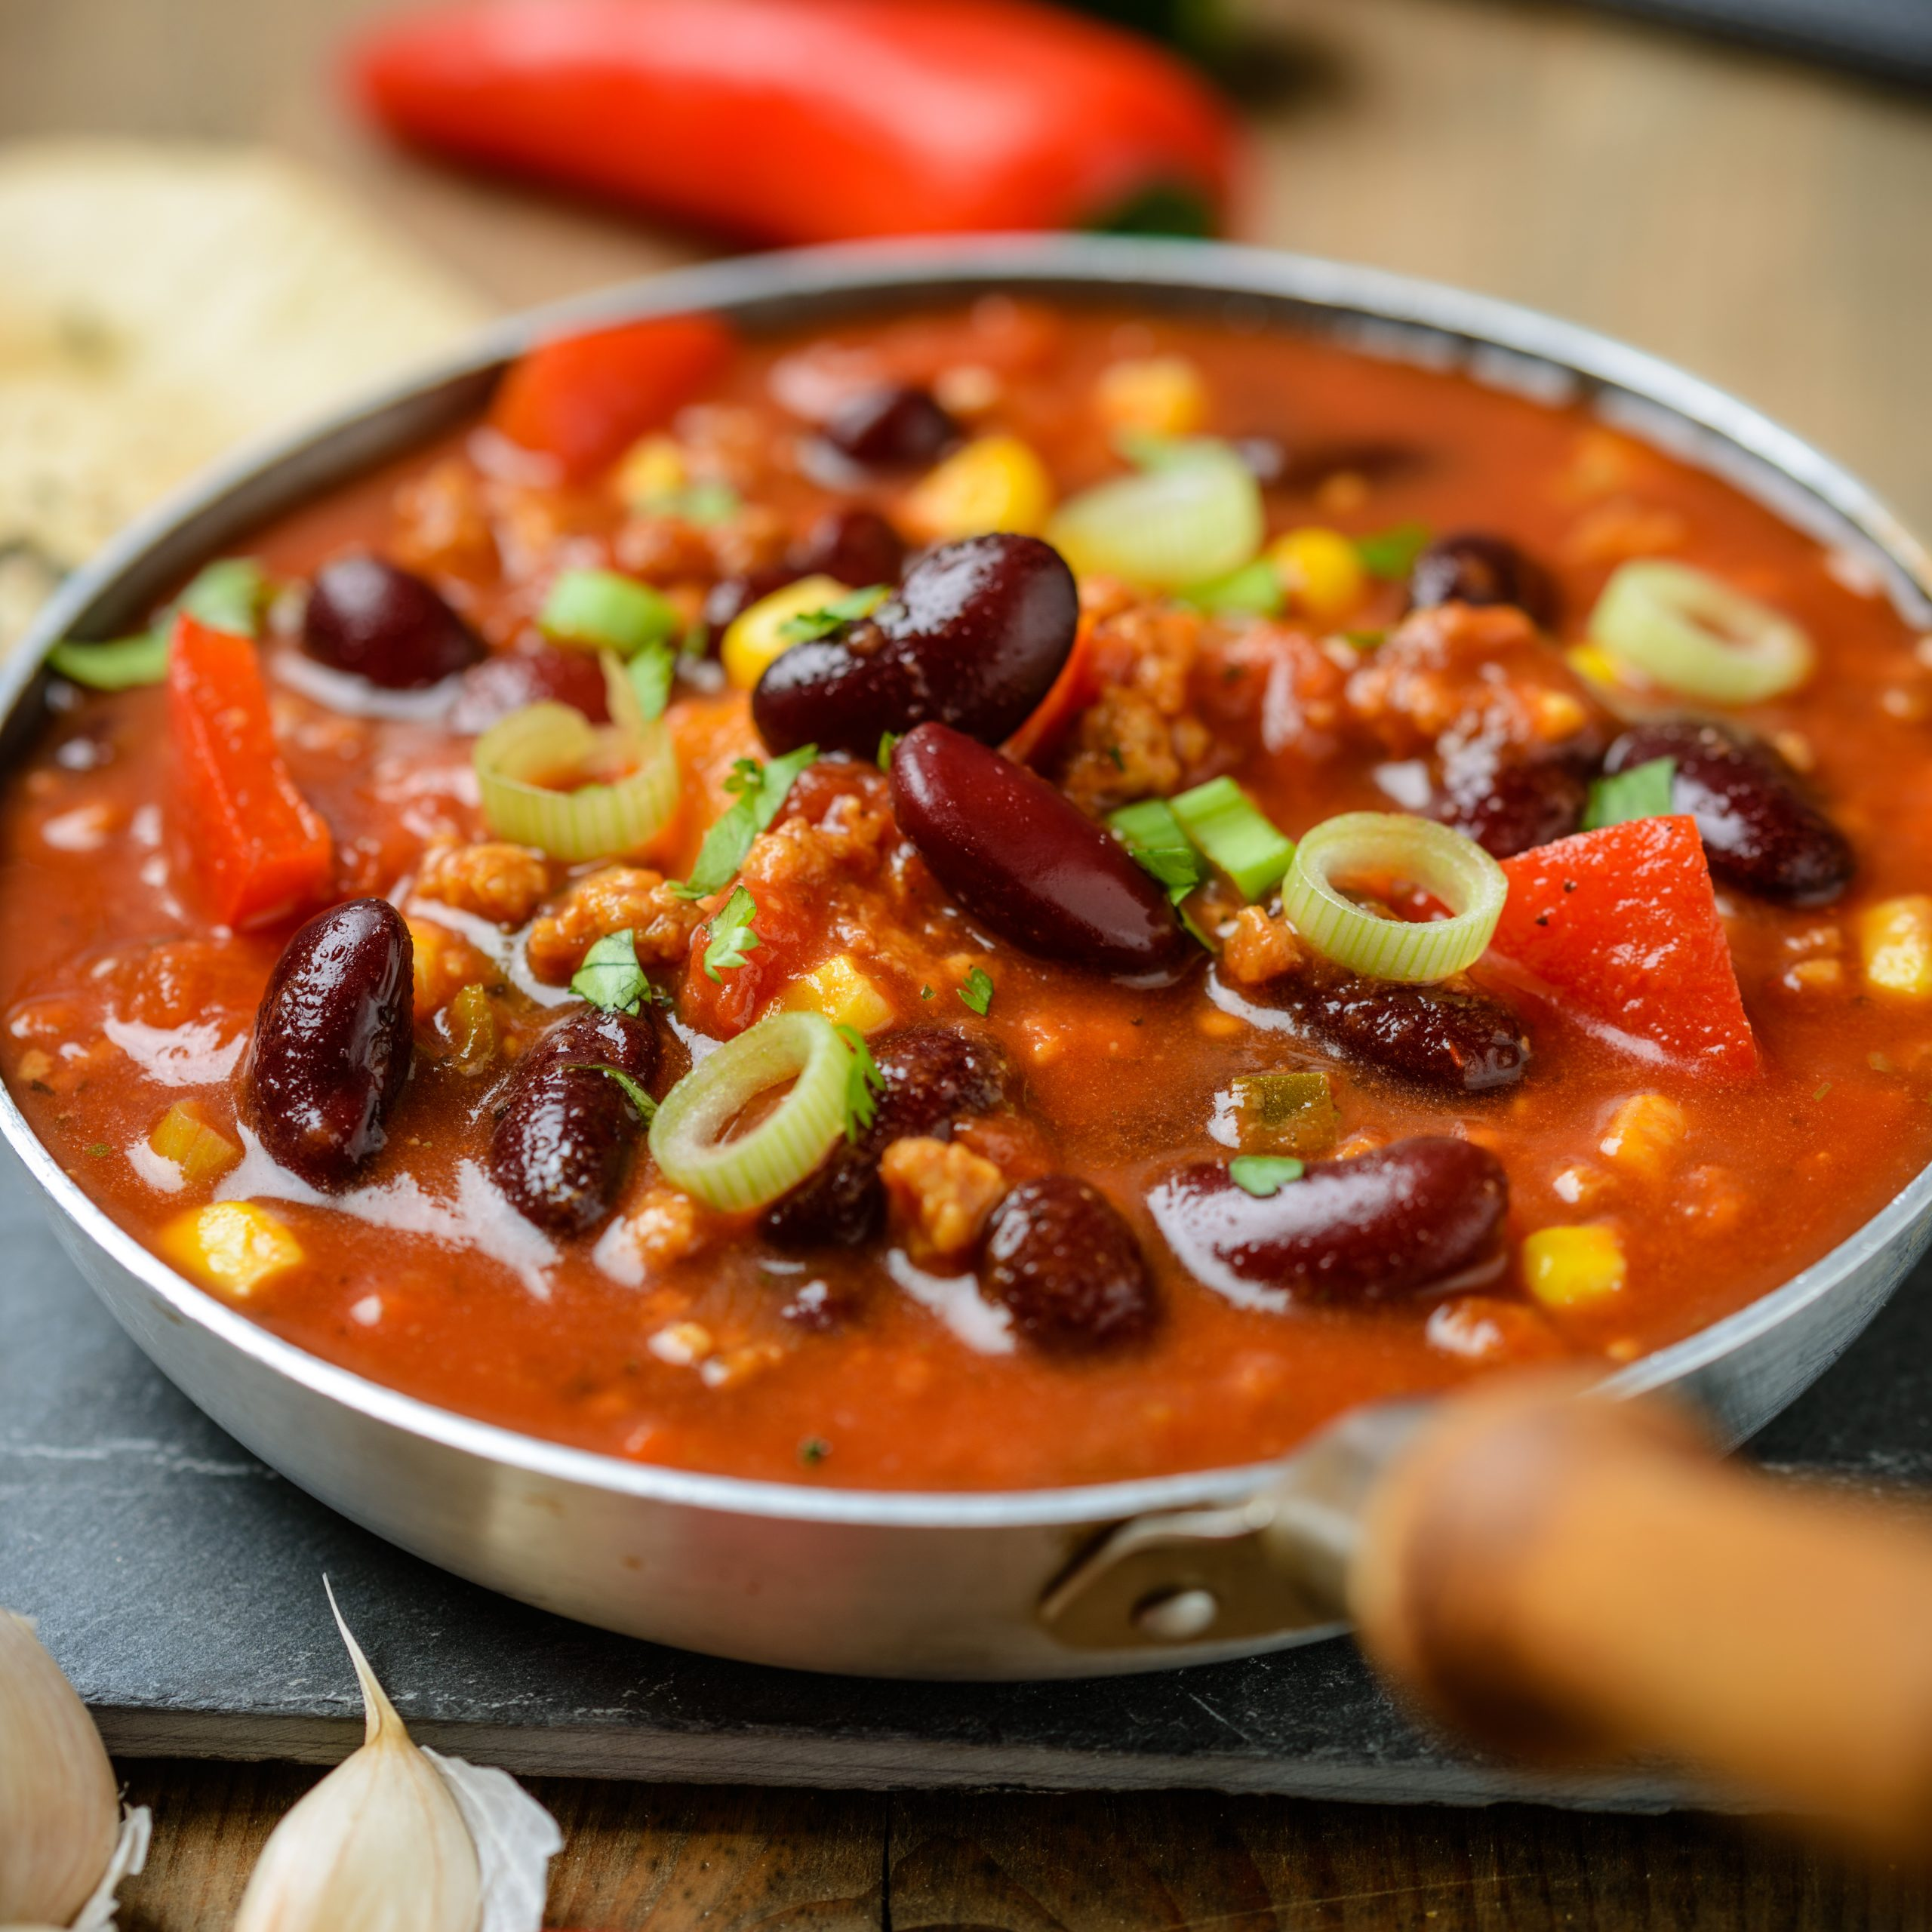 Easy Vegan Chili Recipe for Your Slow Cooker